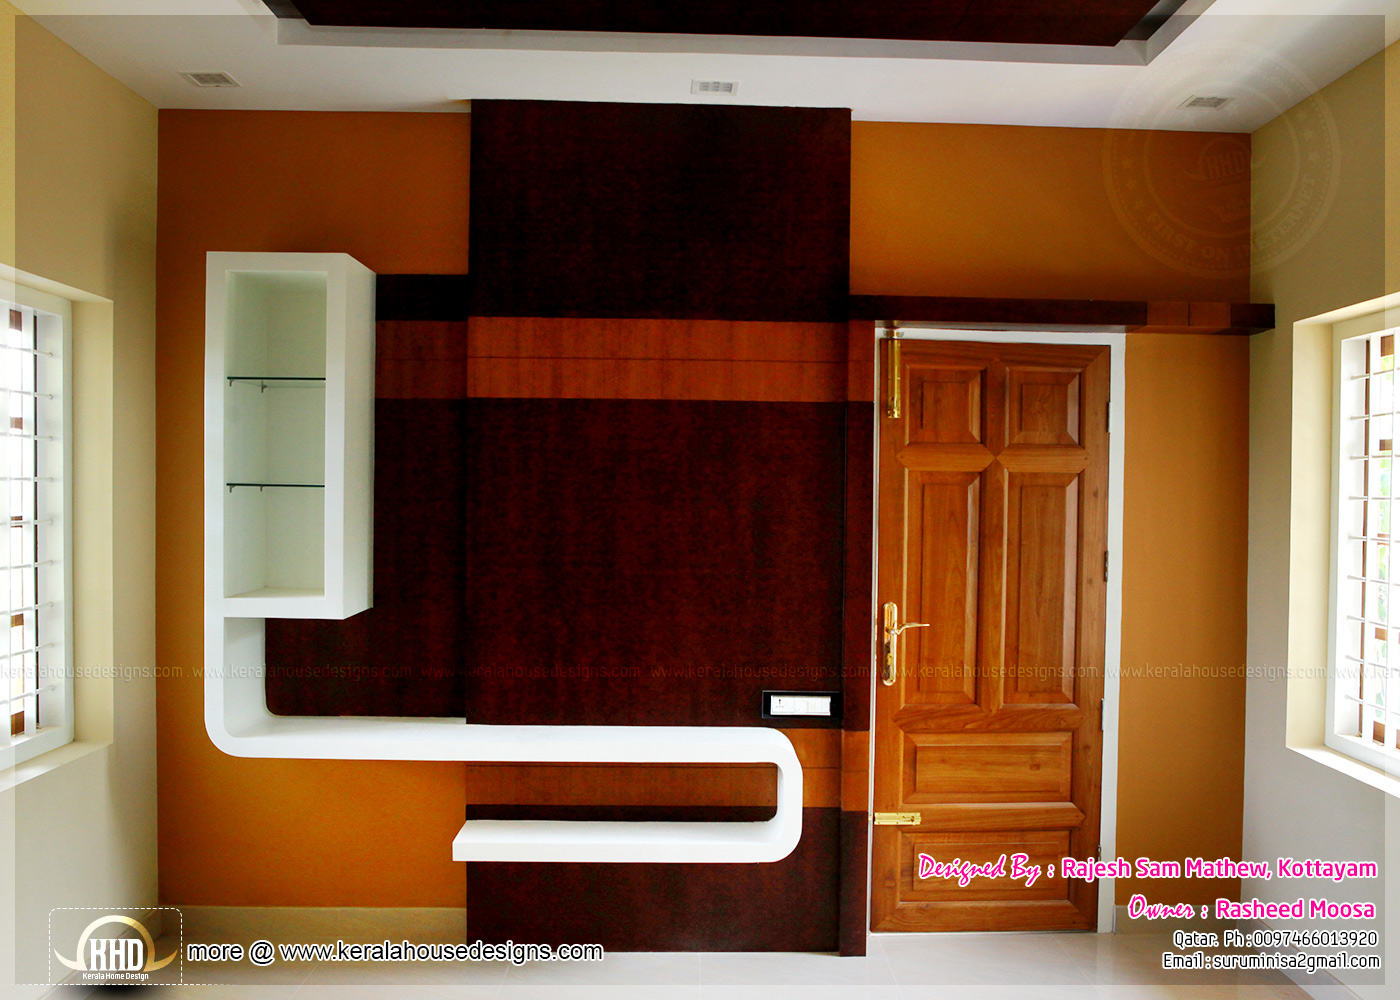 Kerala interior design with photos kerala home design for Small hall interior design photos india